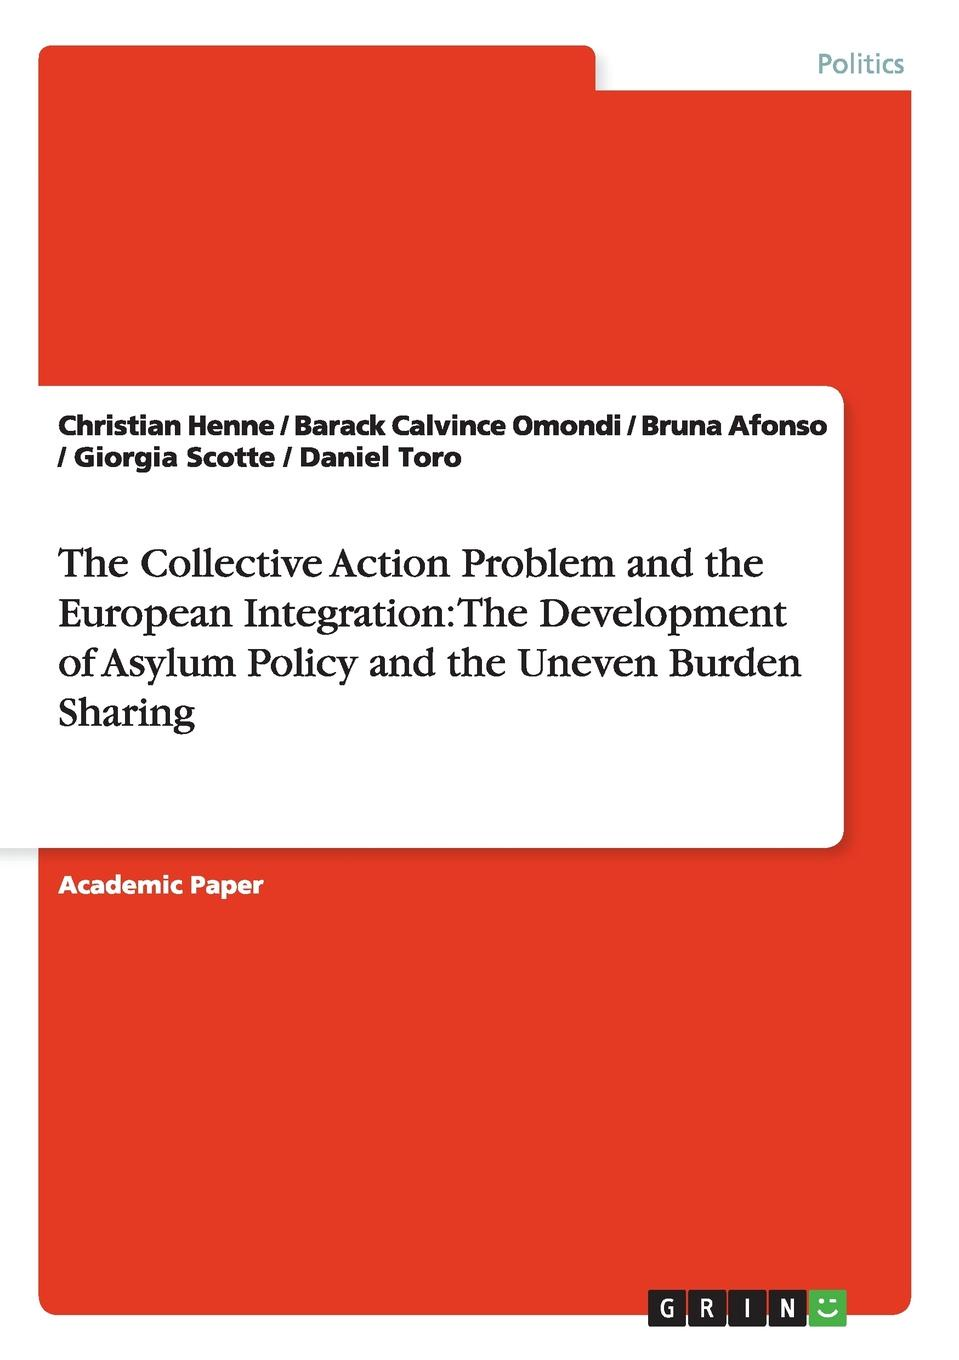 Christian Henne, Barack Calvince Omondi, Bruna Afonso The Collective Action Problem and the European Integration. The Development of Asylum Policy and the Uneven Burden Sharing electricity market in turkey and its integration policy into the eu